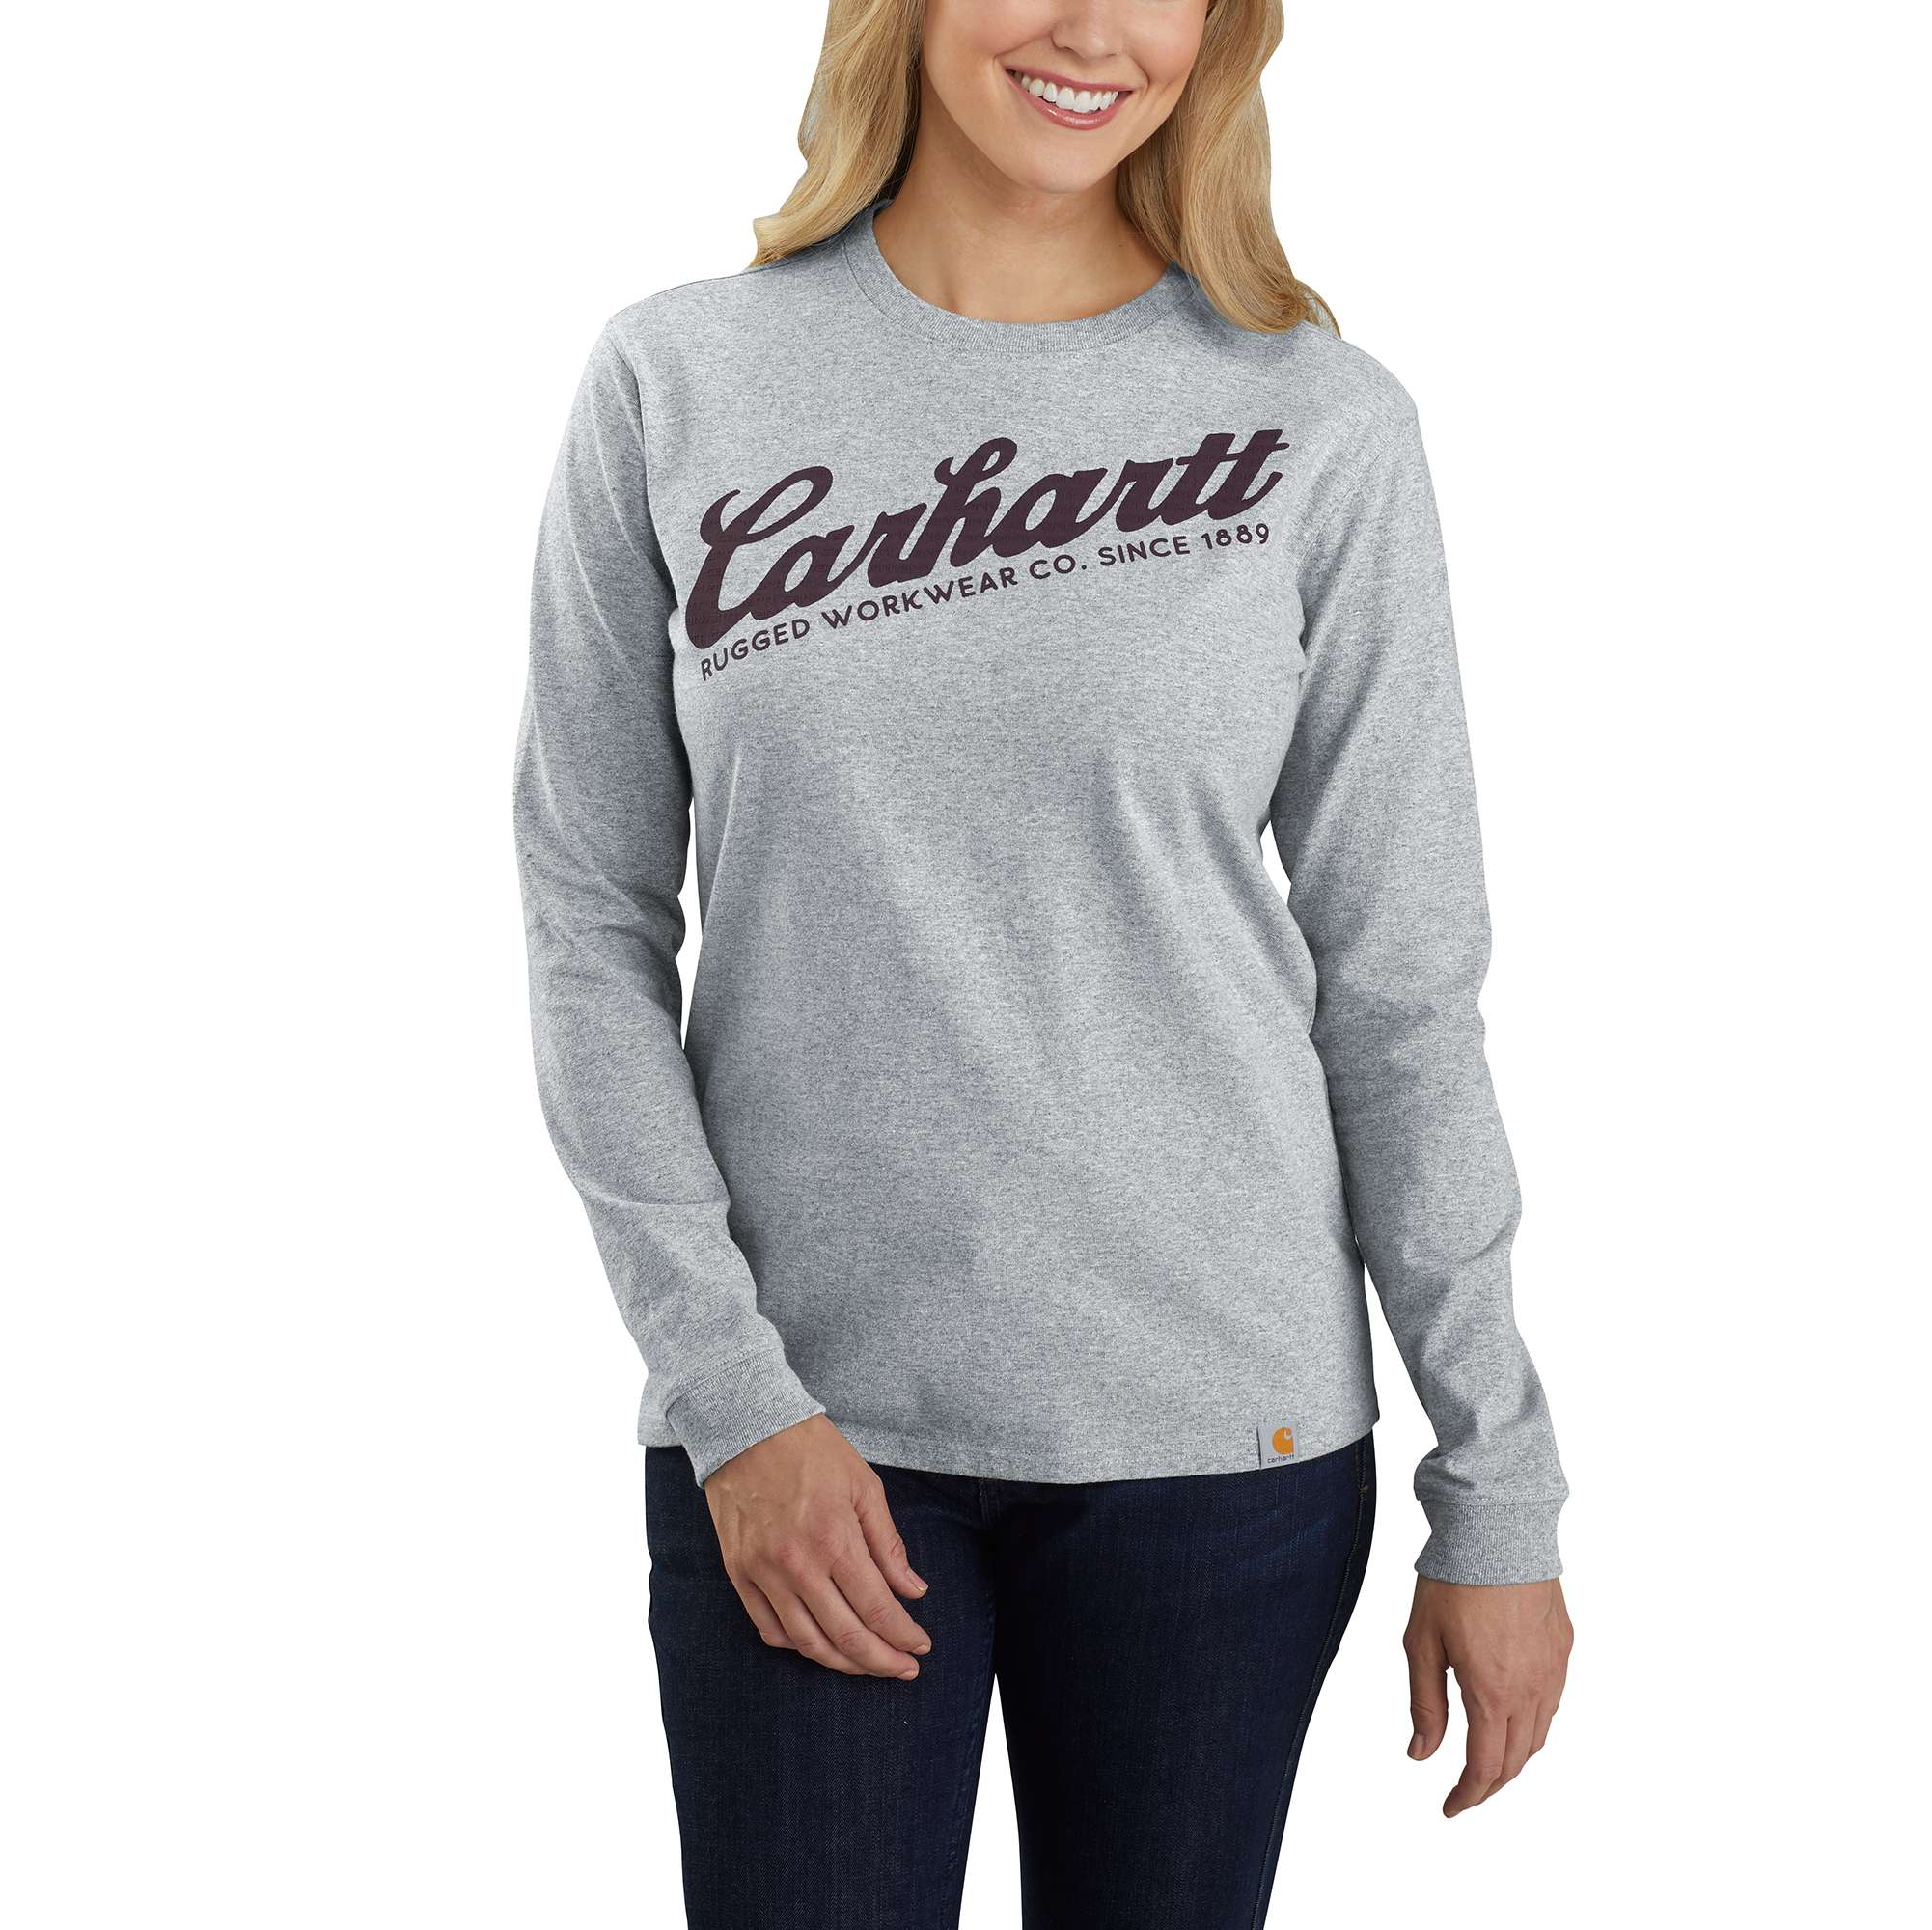 Carhartt Original Fit Heavyweight Long-Sleeve Carhartt Graphic T-Shirt